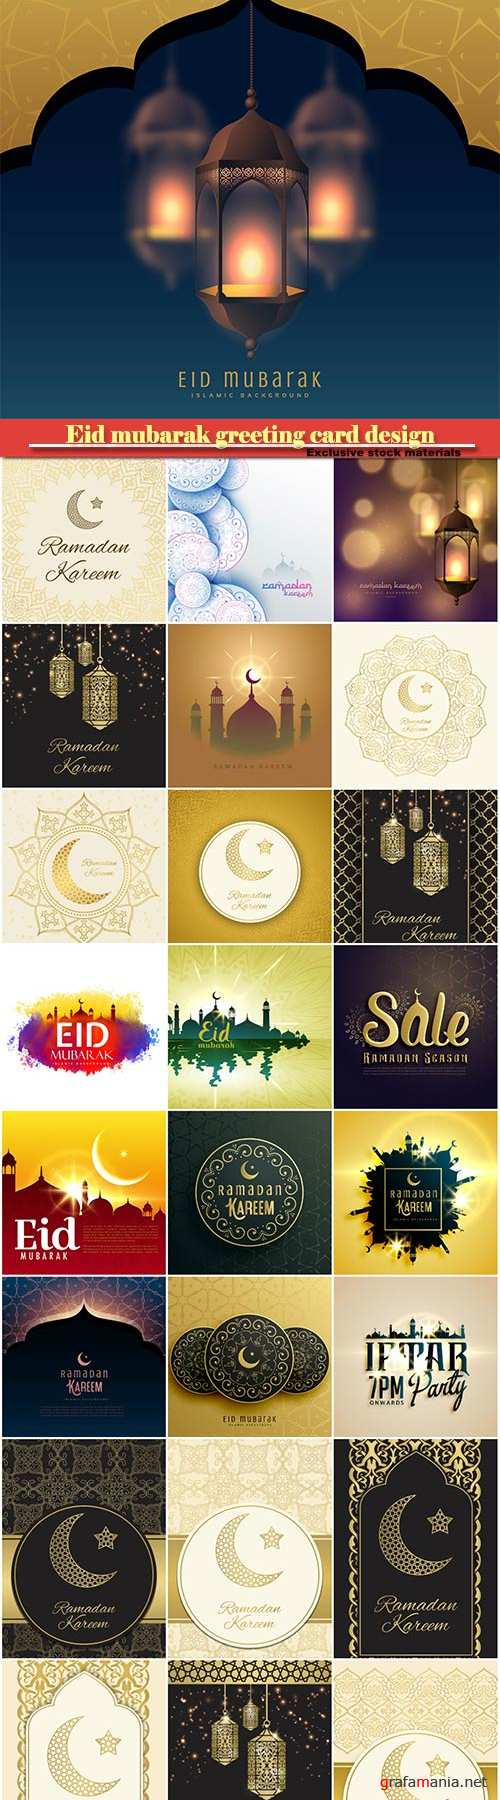 Eid mubarak greeting card design in islamic decoration, ramadan kareem vector card